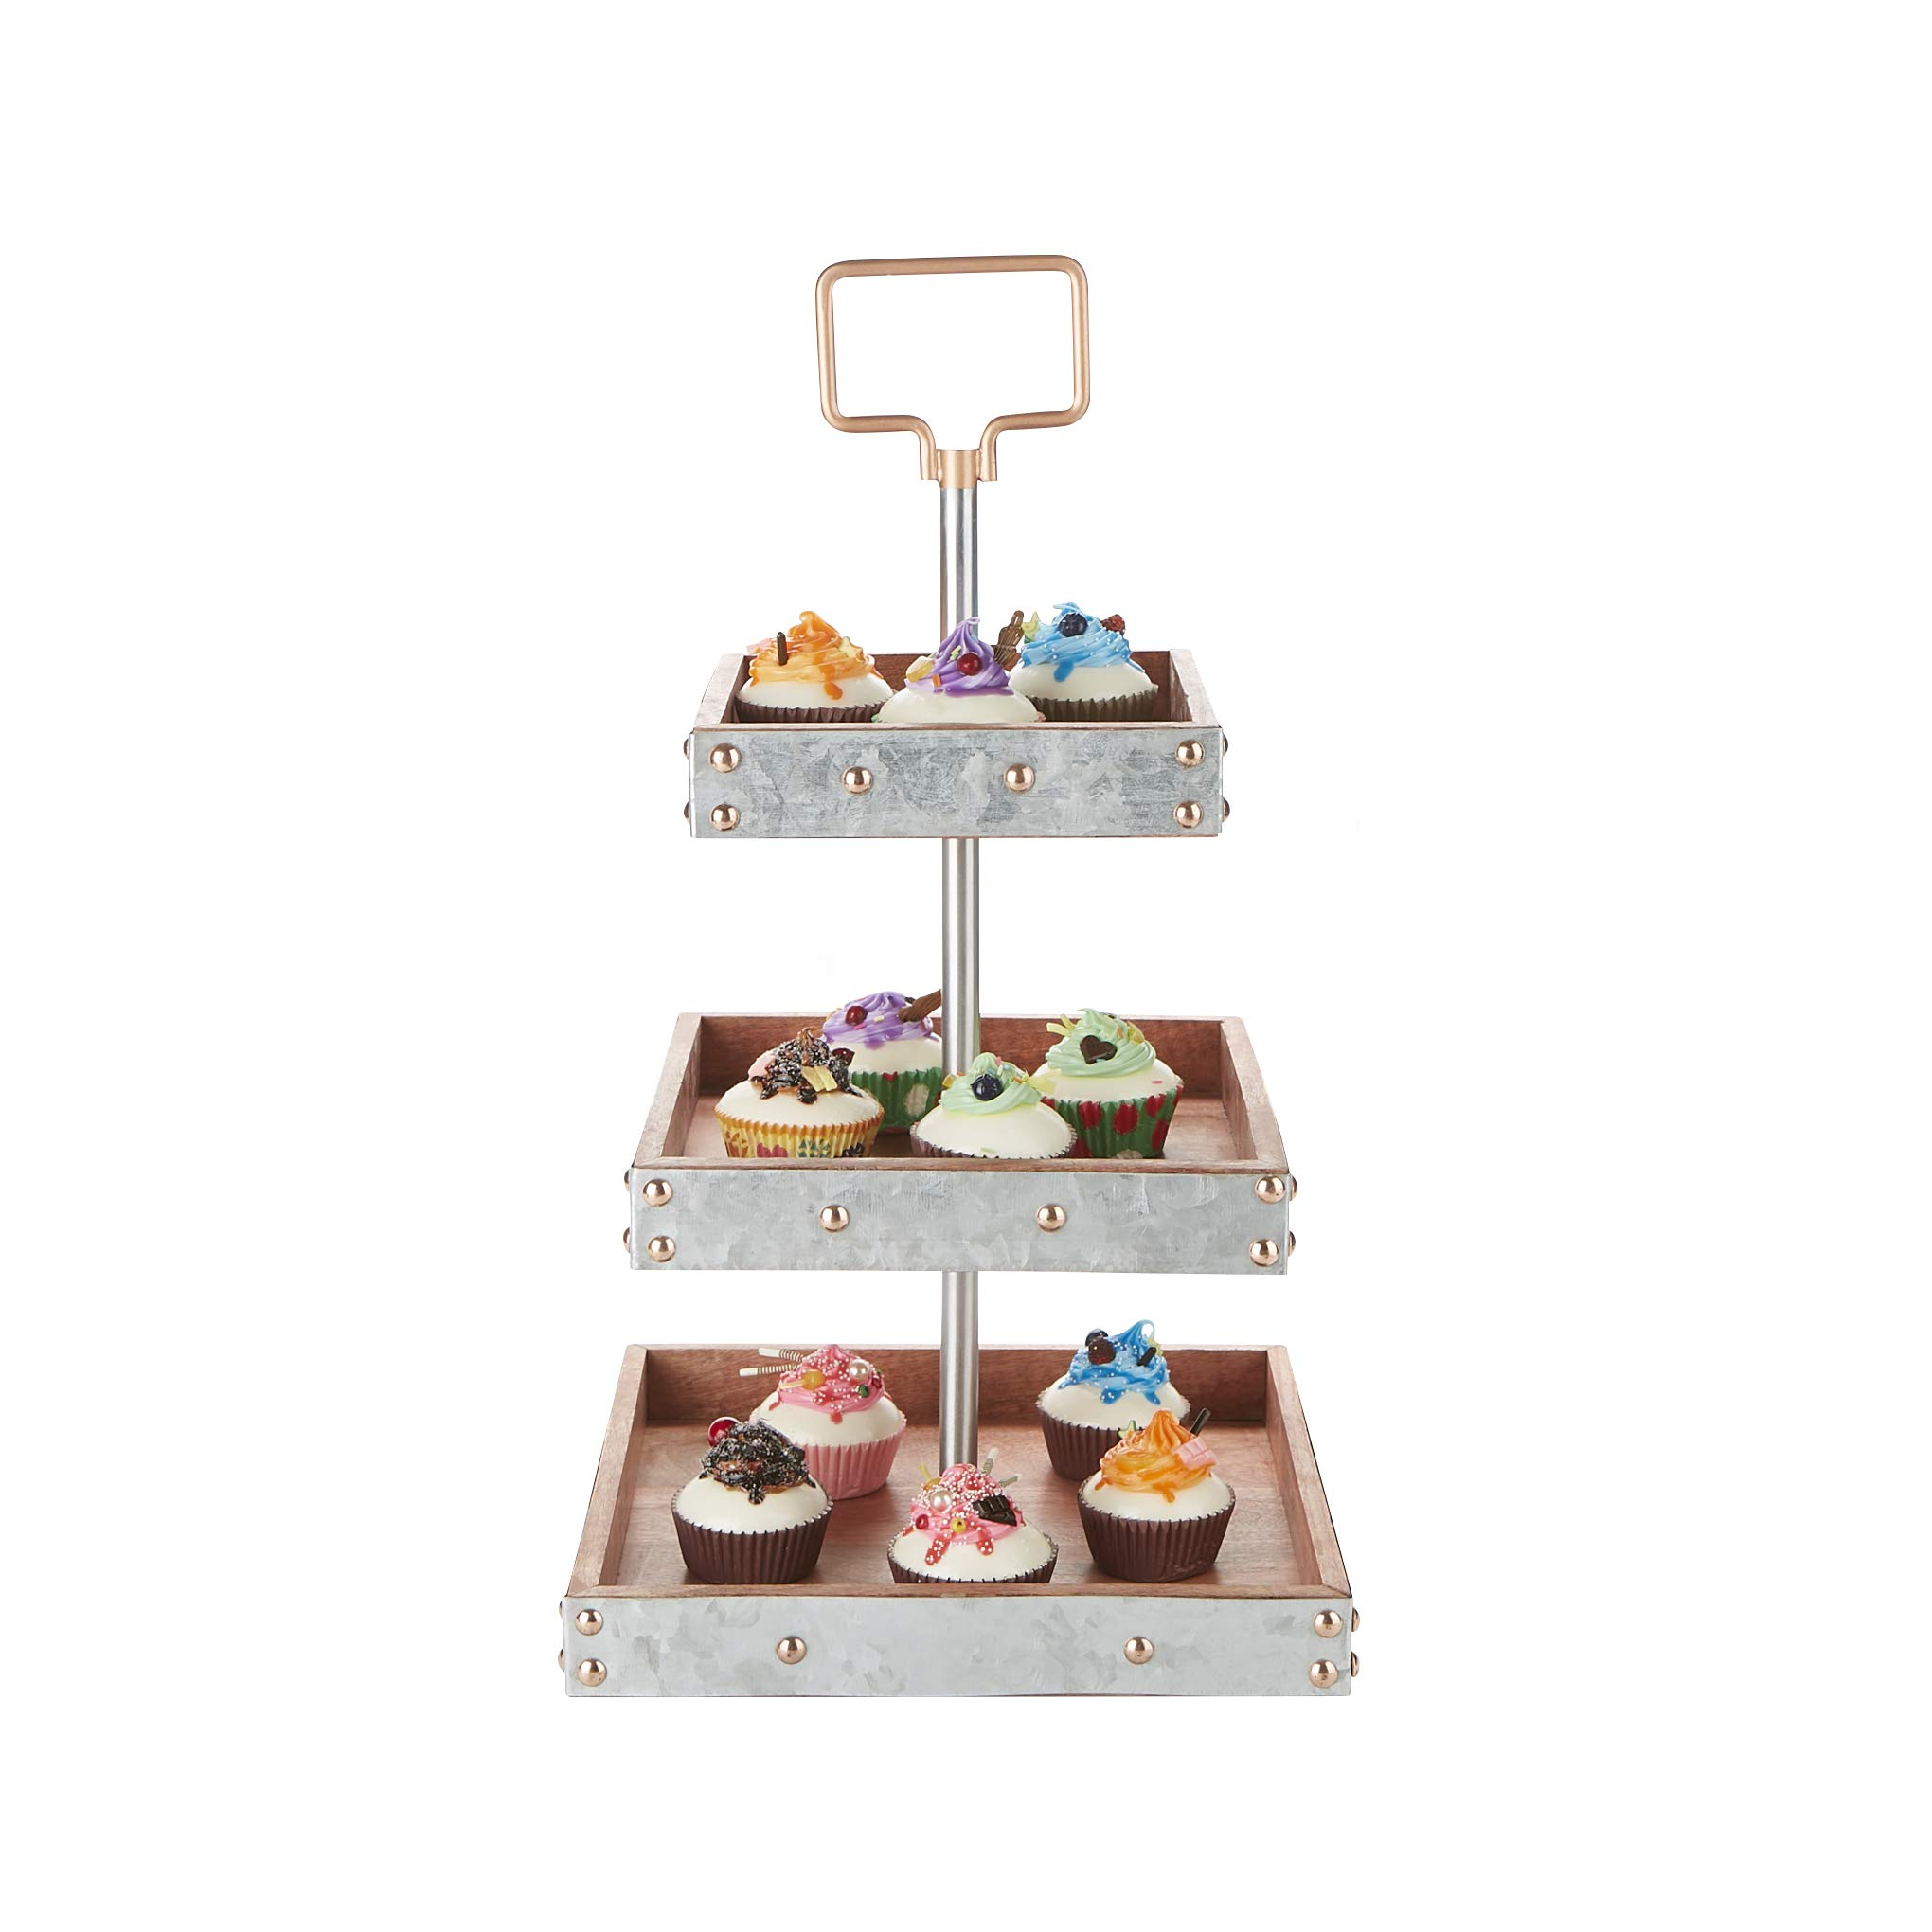 Mind Reader ALUT3SQ-SIL 3 Square, Party Pastry, Cupcake Holder, Tree Tower Stand, Tiered Serving Dessert Display Tray, Silver, One Size,